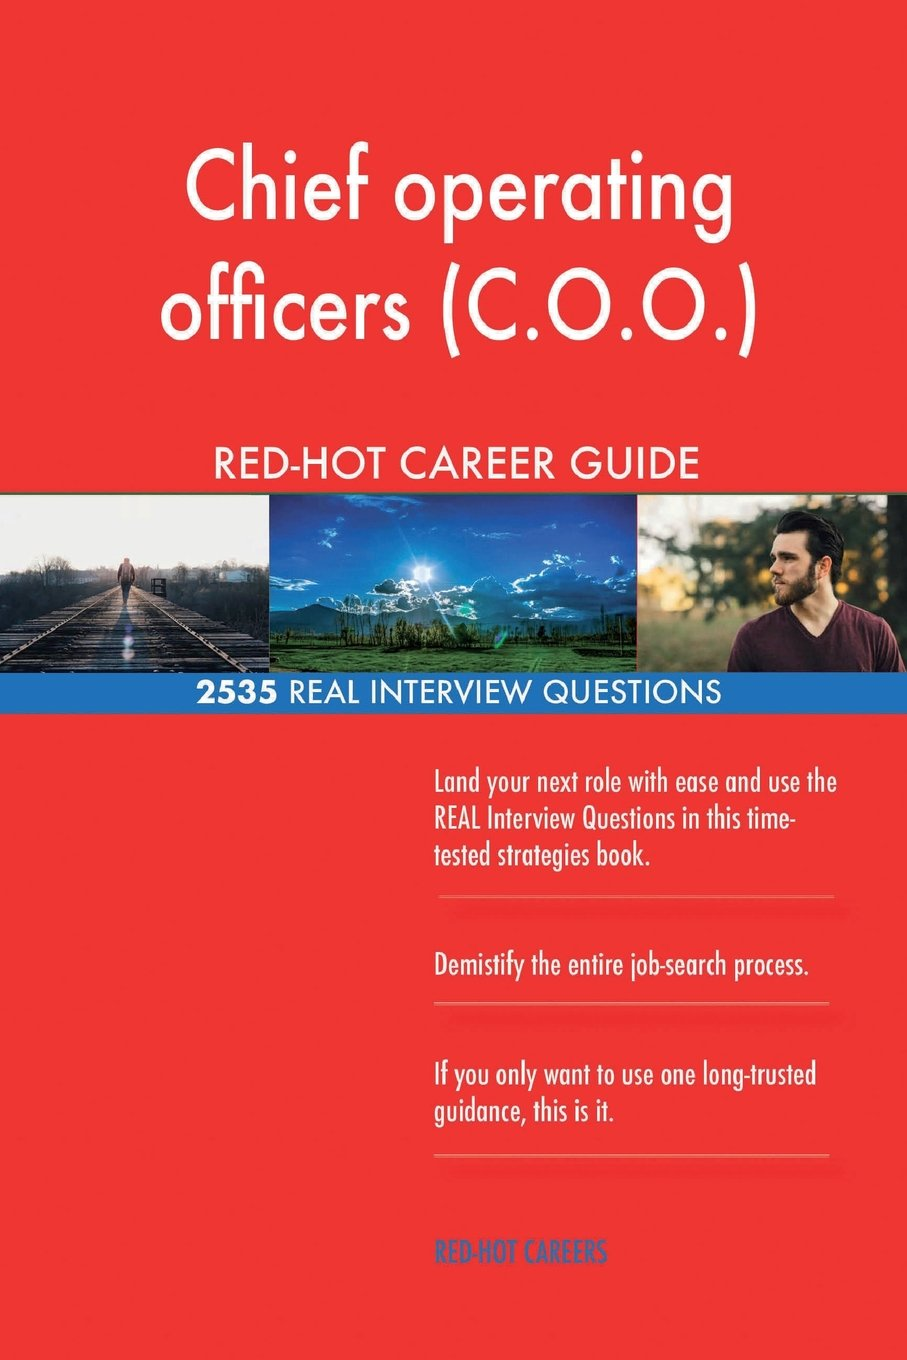 Download Chief operating officers (C.O.O.) RED-HOT Career; 2535 REAL Interview Questions ebook